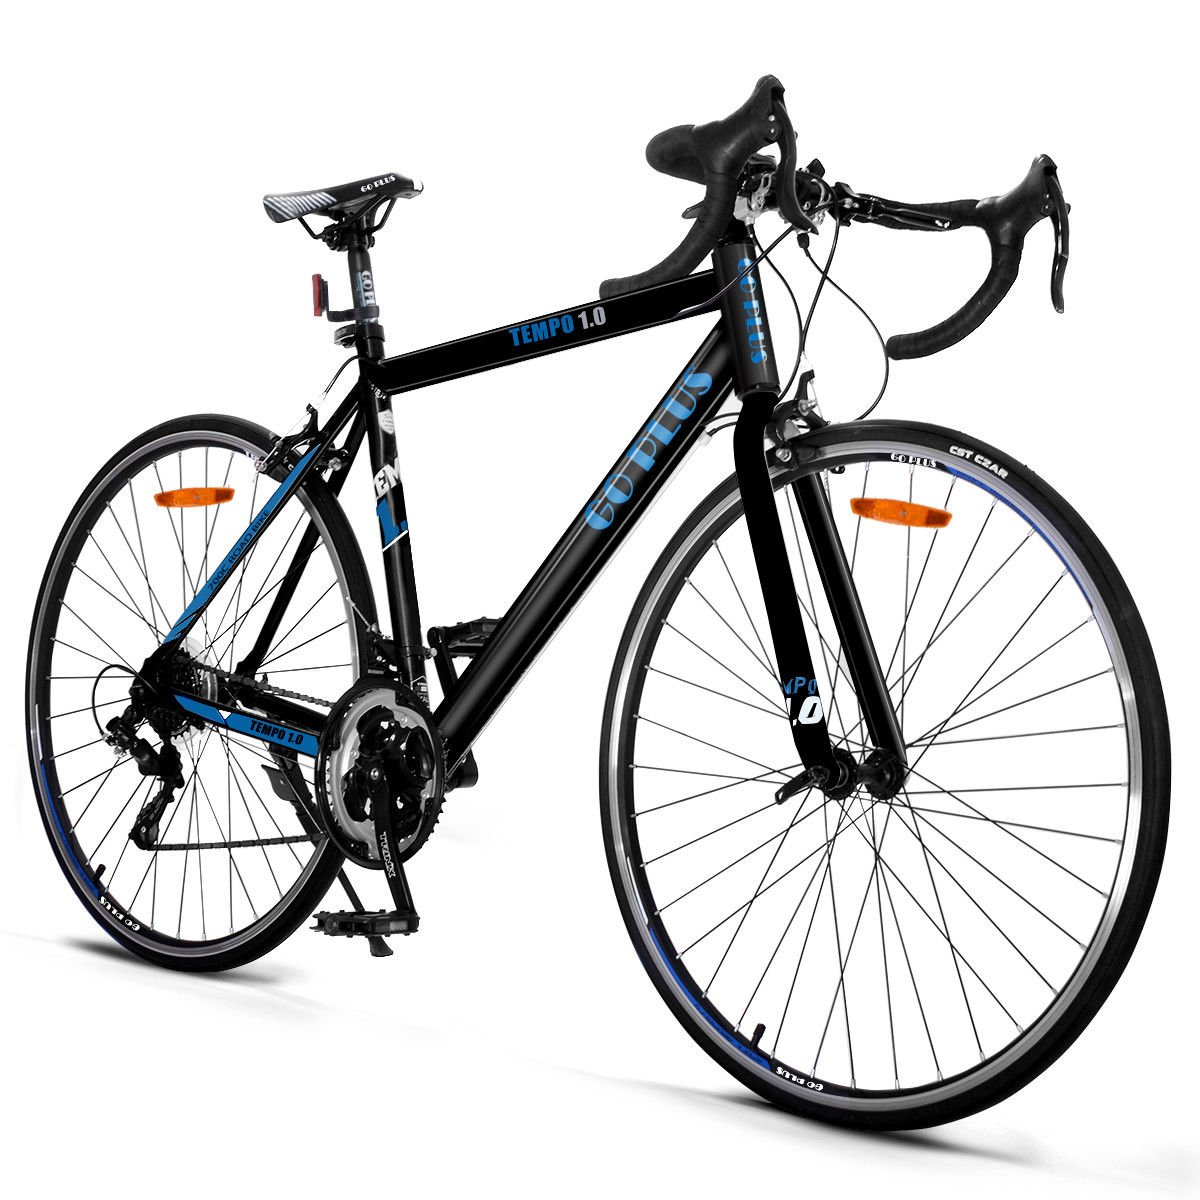 Goplus Road Bike Best Touring Bikes Under $500